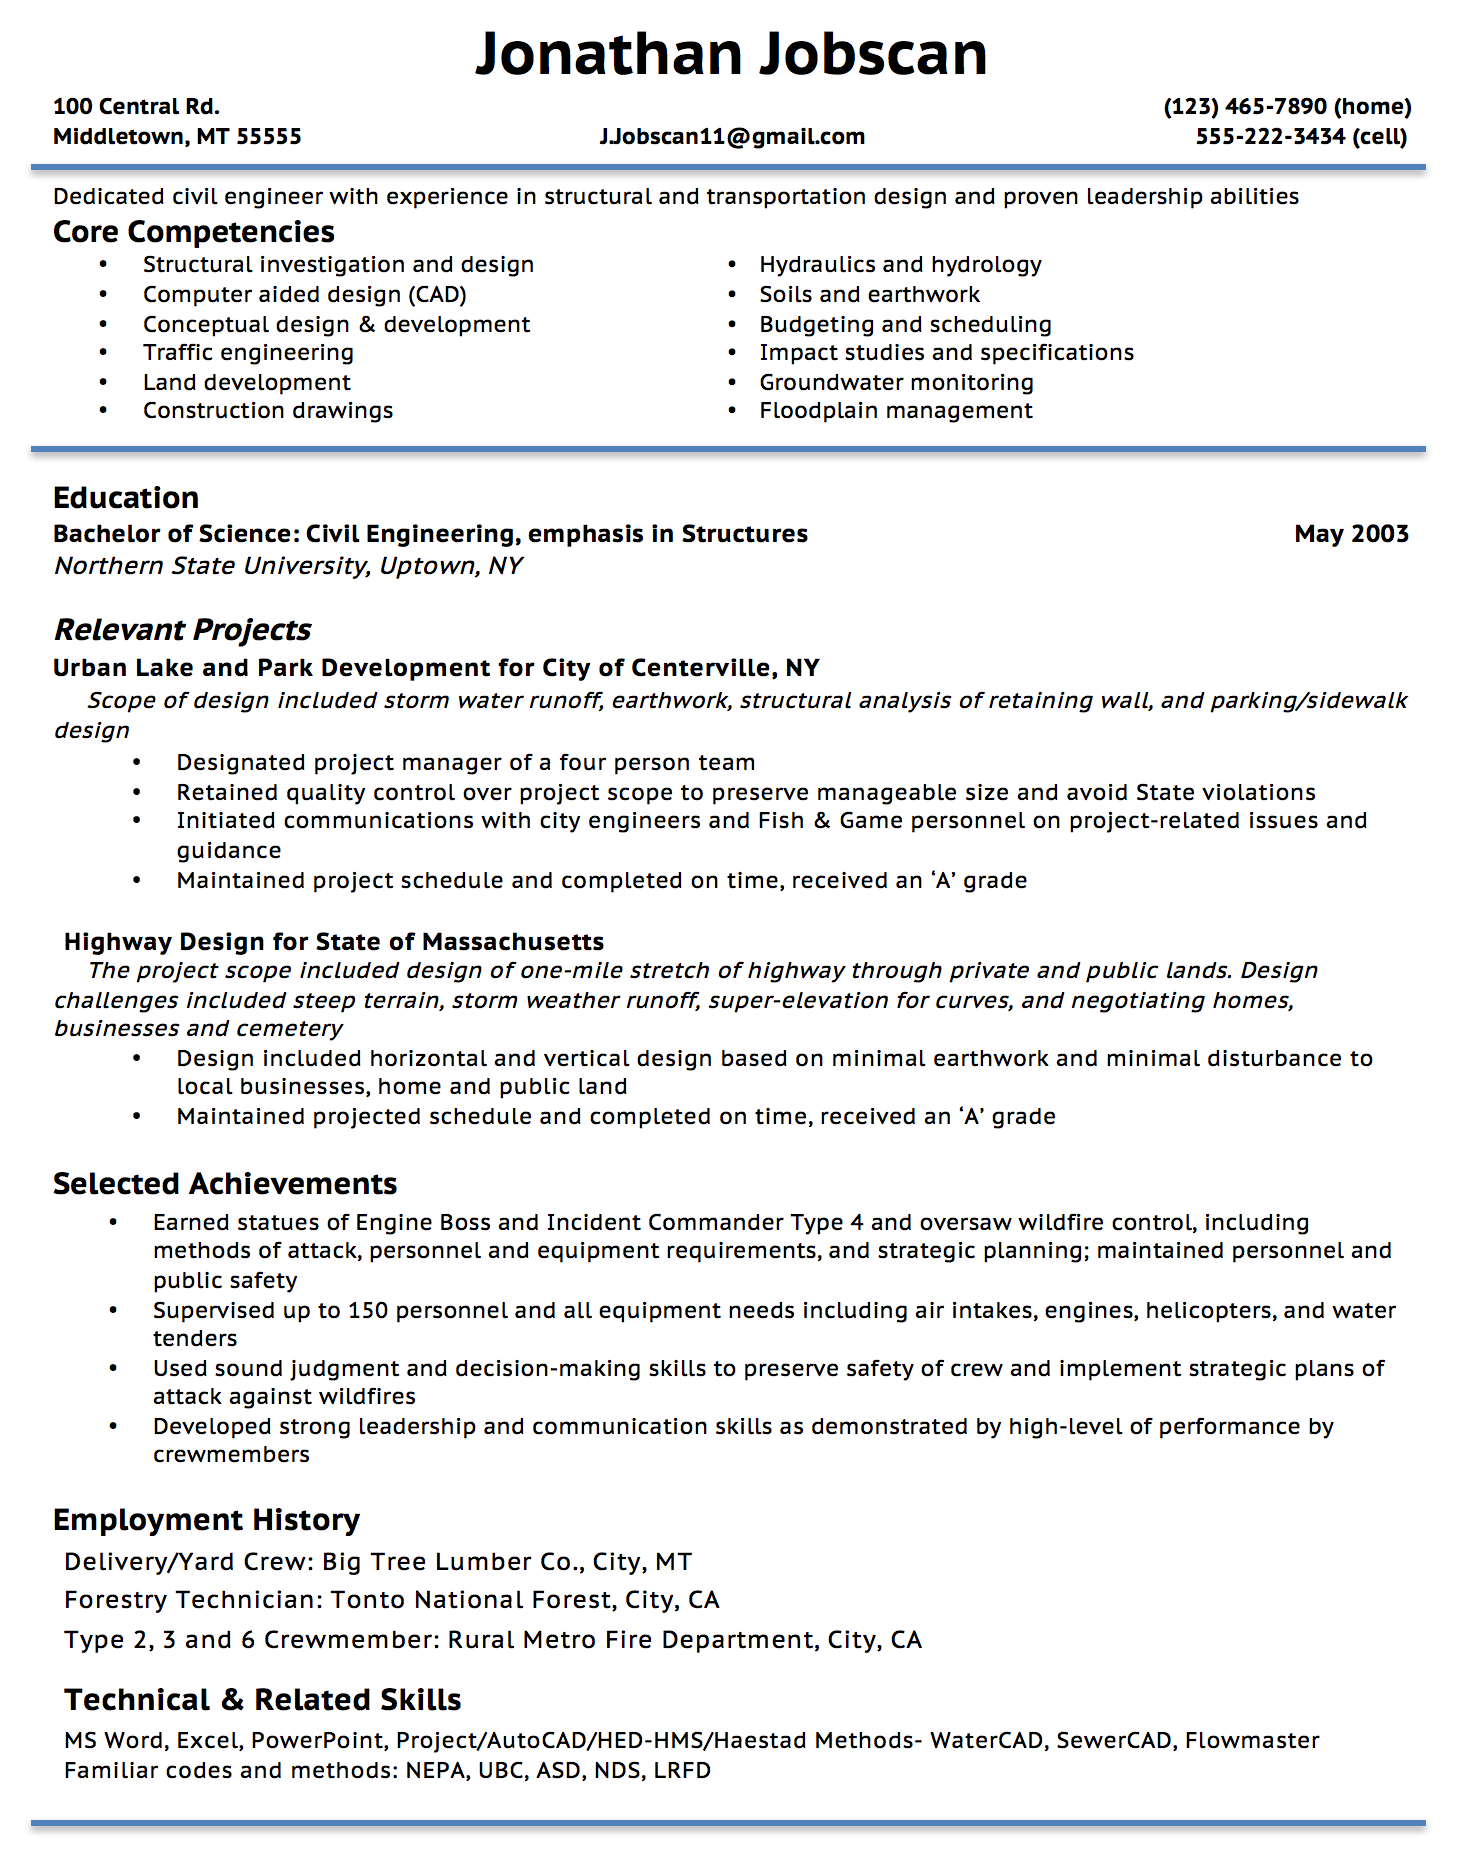 Opposenewapstandardsus  Unusual Resume Writing Guide  Jobscan With Outstanding Example Of A Functional Resume Format With Astounding Student Resume Objective Examples Also Teradata Resume In Addition Marketing Manager Resumes And Hvac Resume Objective As Well As College Resumes For High School Seniors Additionally Resume For Recent High School Graduate From Jobscanco With Opposenewapstandardsus  Outstanding Resume Writing Guide  Jobscan With Astounding Example Of A Functional Resume Format And Unusual Student Resume Objective Examples Also Teradata Resume In Addition Marketing Manager Resumes From Jobscanco